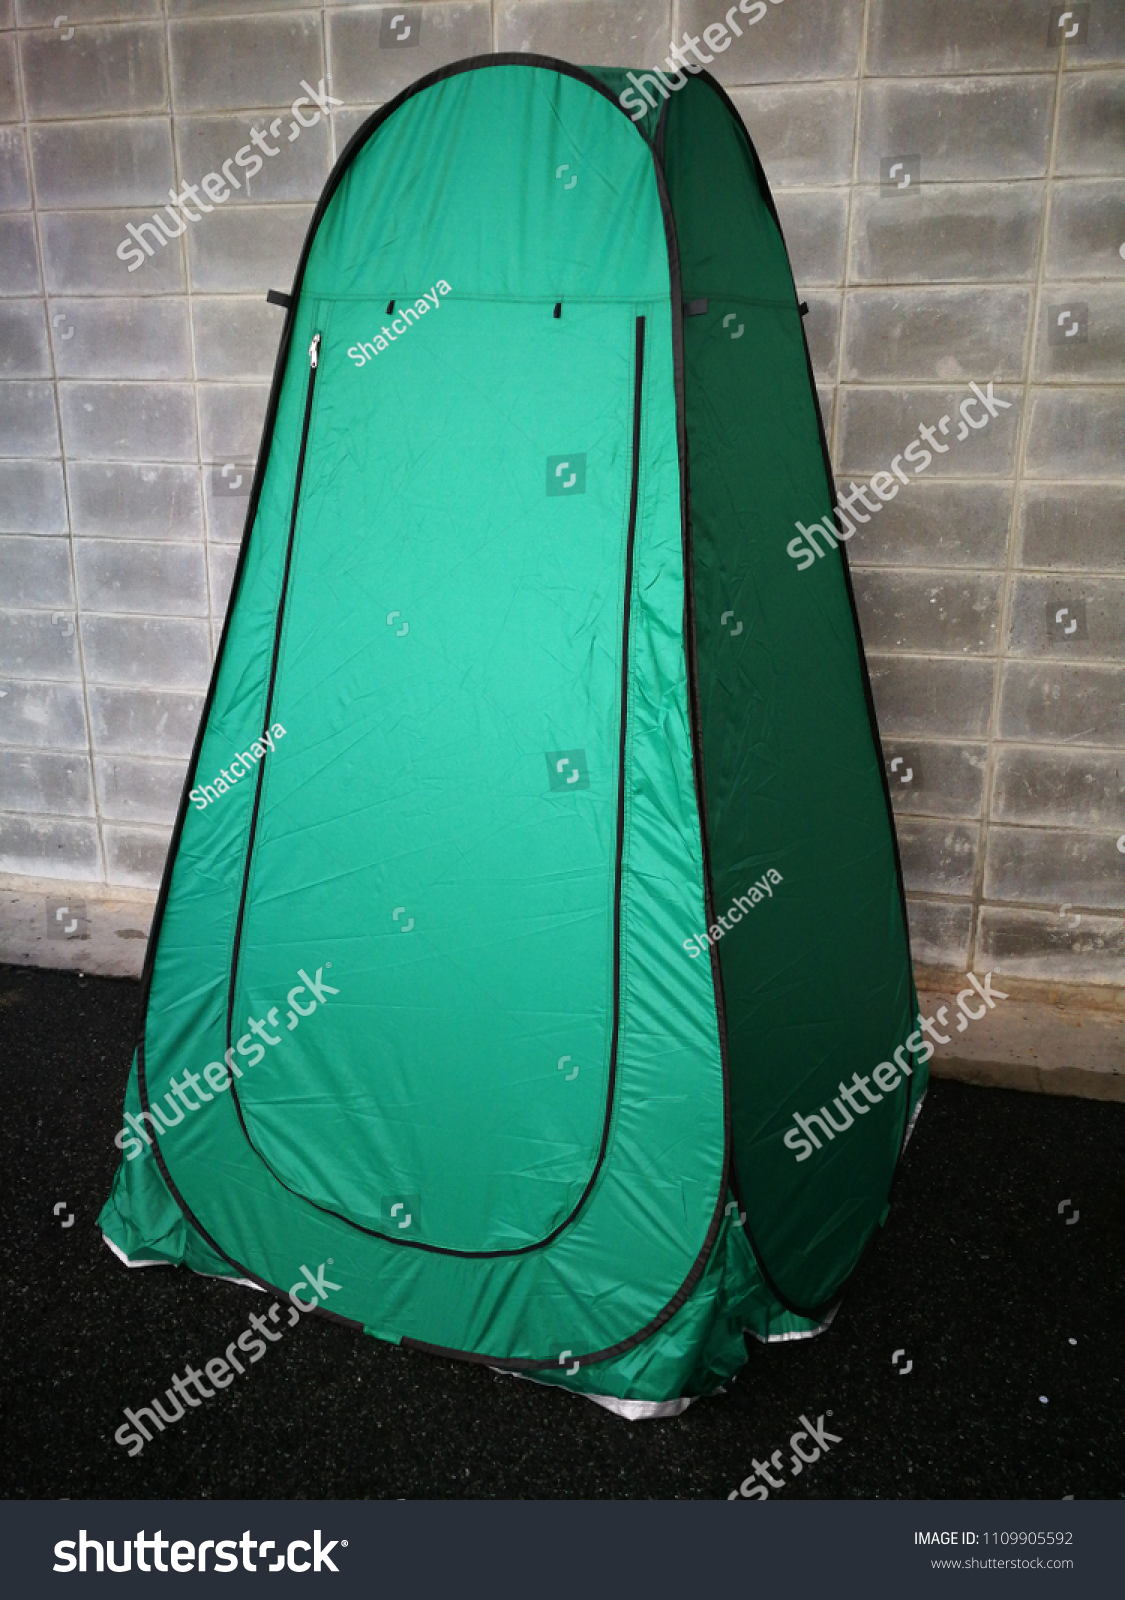 dark green bathroom tents for c&er wear or change clothes outdoor & Dark Green Bathroom Tents Camper Wear Stock Photo (Edit Now ...